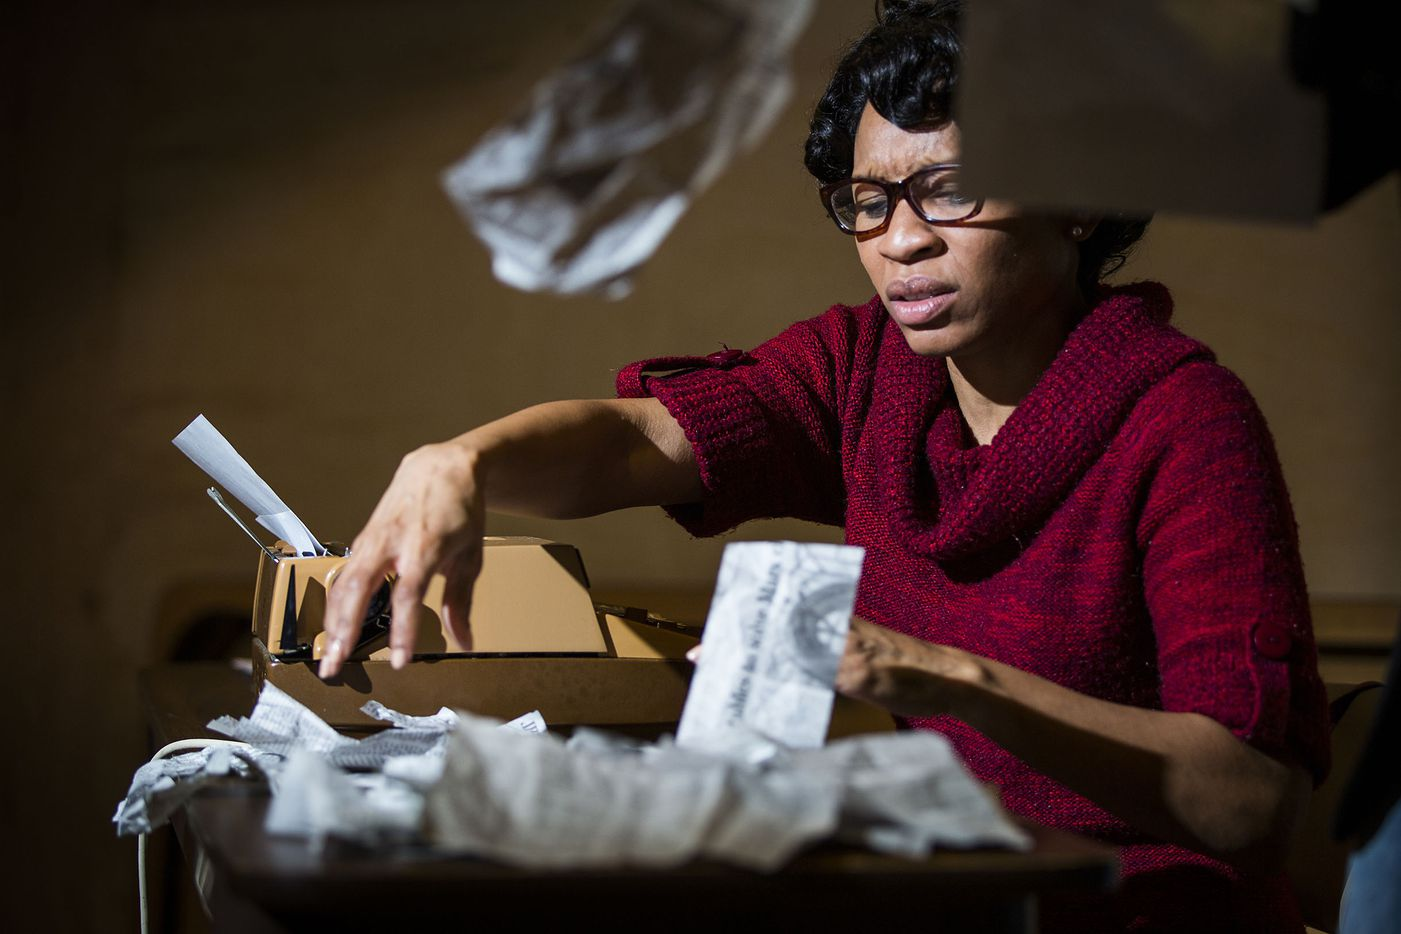 Kenneisha Thompson, who plays Willie Pearl Mackey, during a  rehearsal for the play The 67th Book of the Bible.